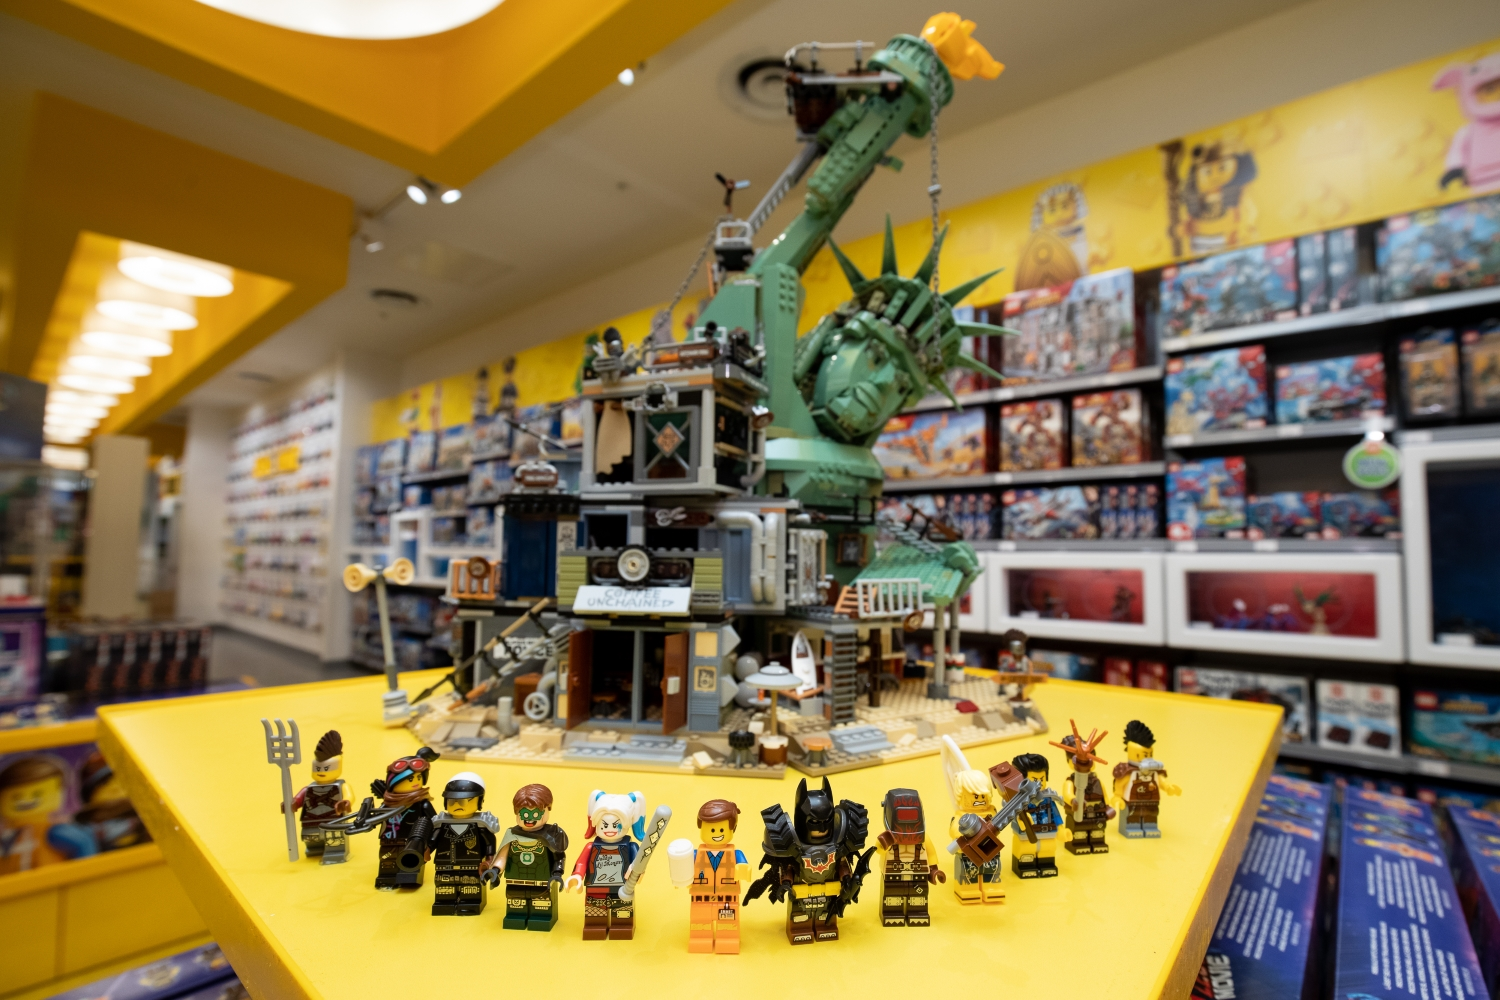 The Lego Movie 2 toy sets are in everyway as awesome as you'd think